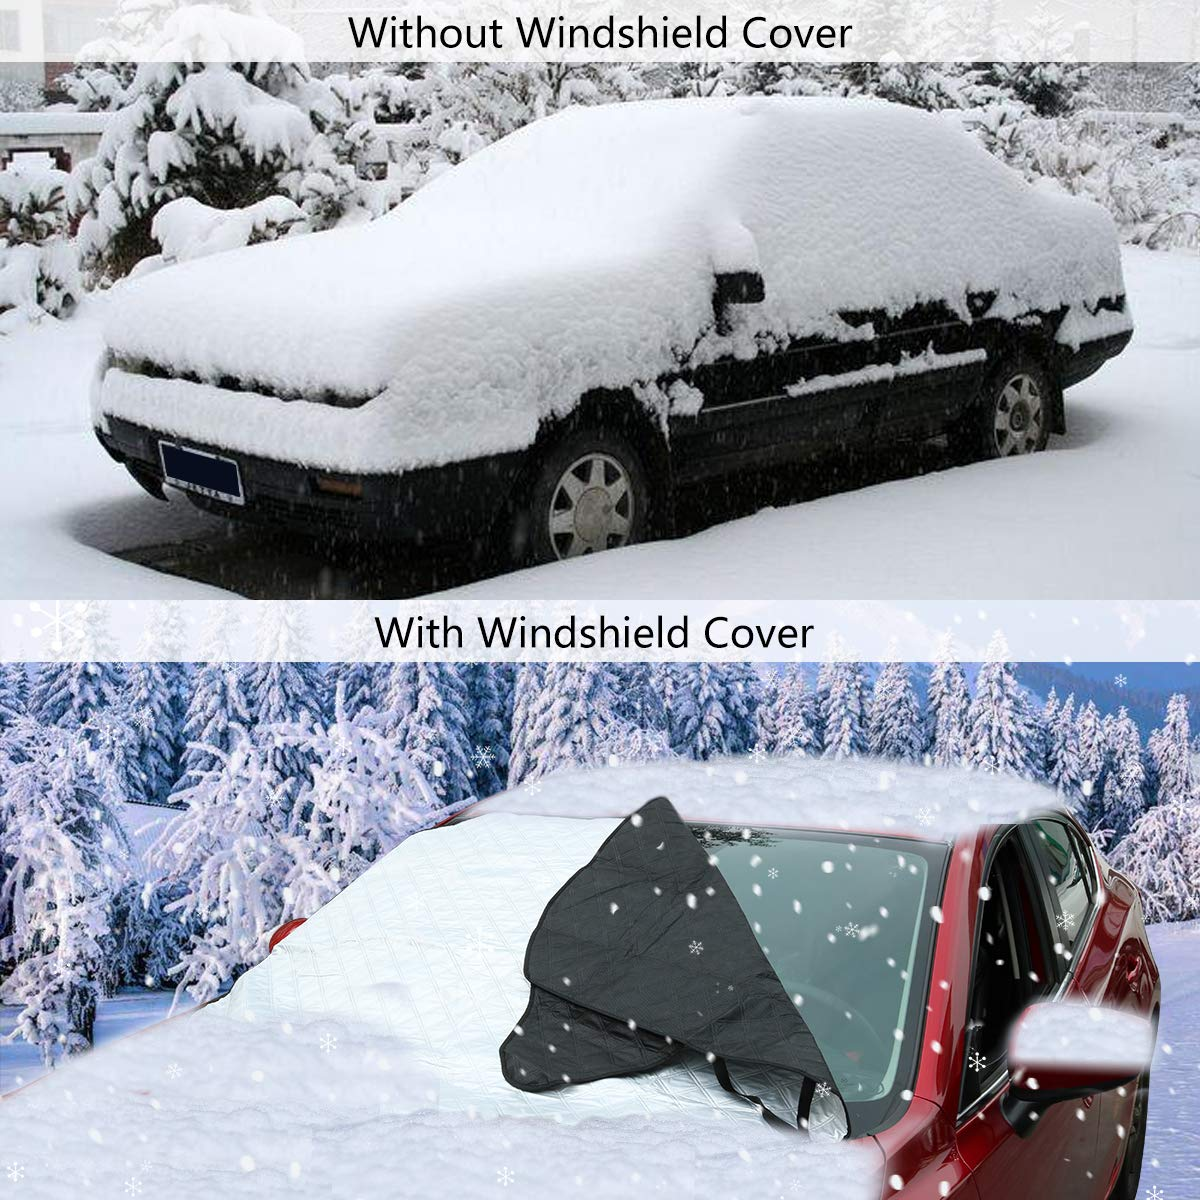 Amazon.com: GAMURRY Car Windshield Snow Cover[58 x 46 inch], Windshield Cover for Ice and Snow[Build in Strong Magnet], Car Front Windscreen Ice Frost Guard ...